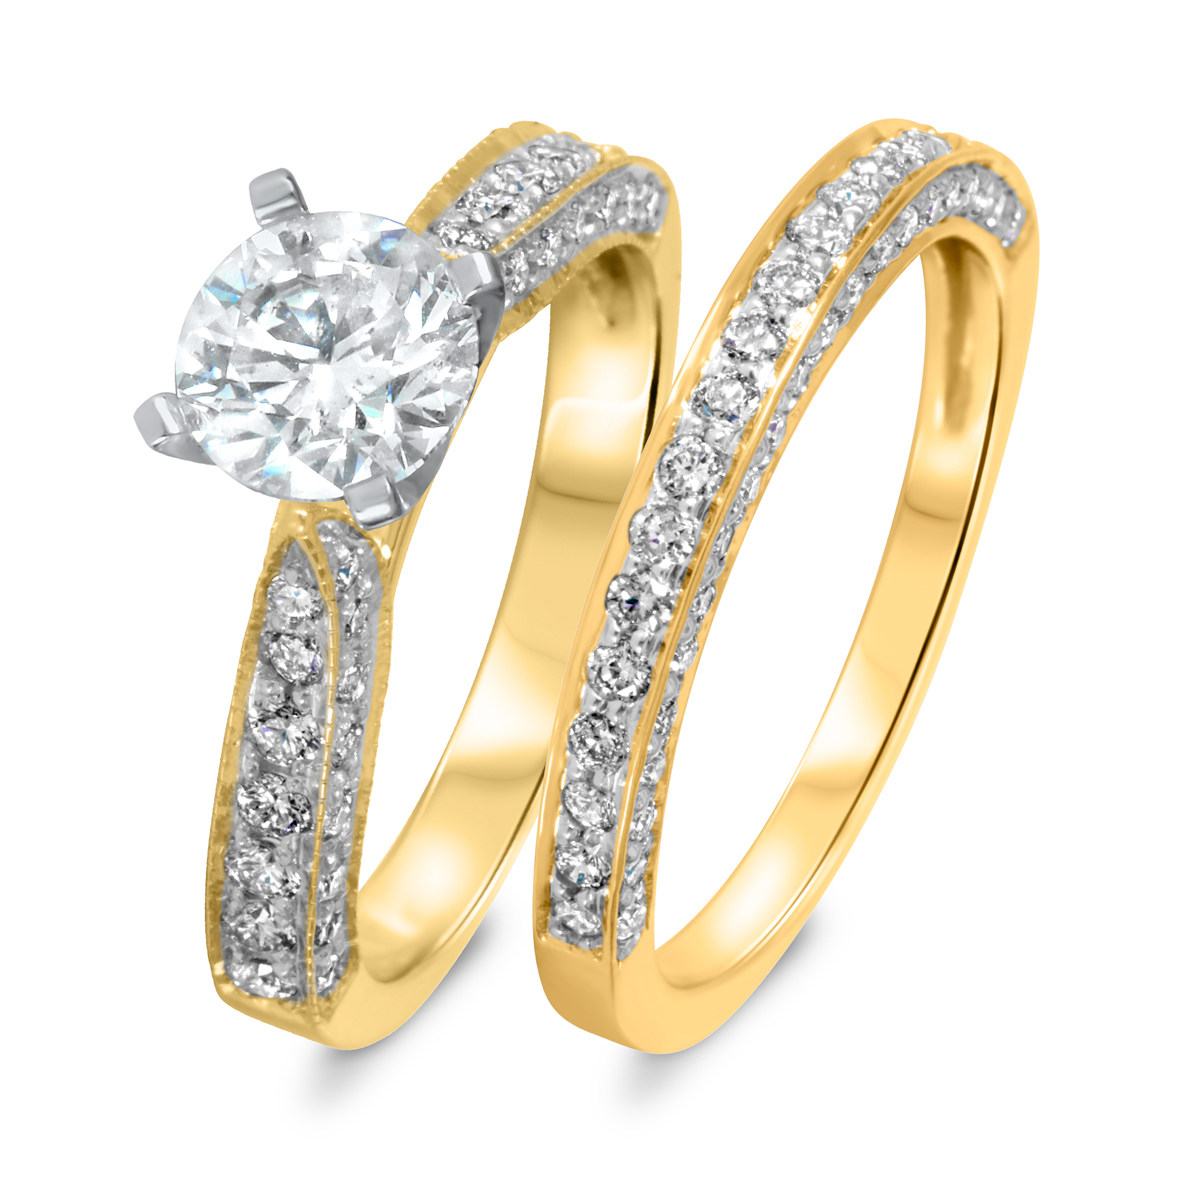 1 7/8 CT. T.W. Diamond Women's Bridal Wedding Ring Set 10K Yellow Gold